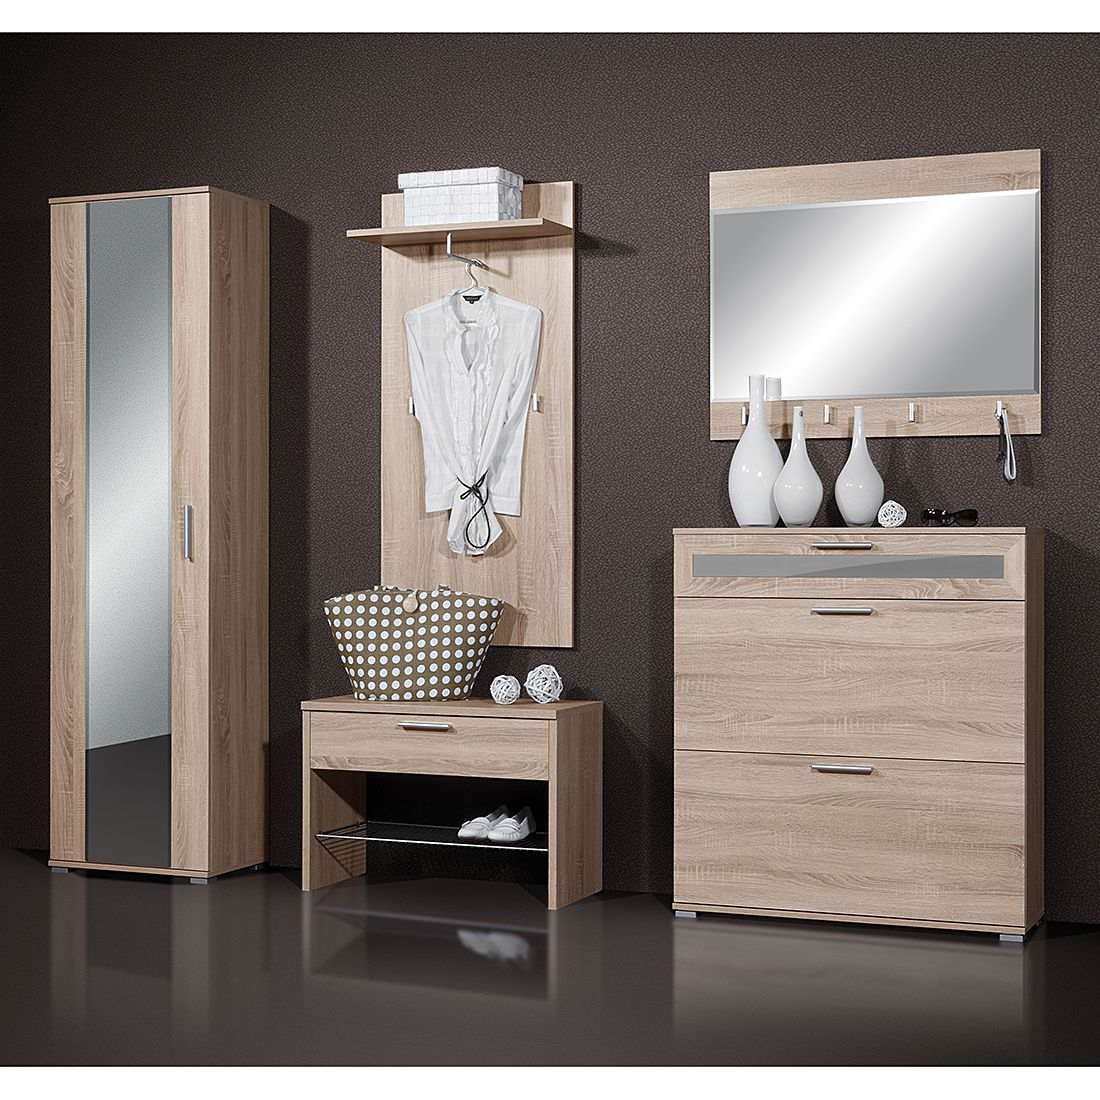 garderoben sets online kaufen m bel suchmaschine. Black Bedroom Furniture Sets. Home Design Ideas